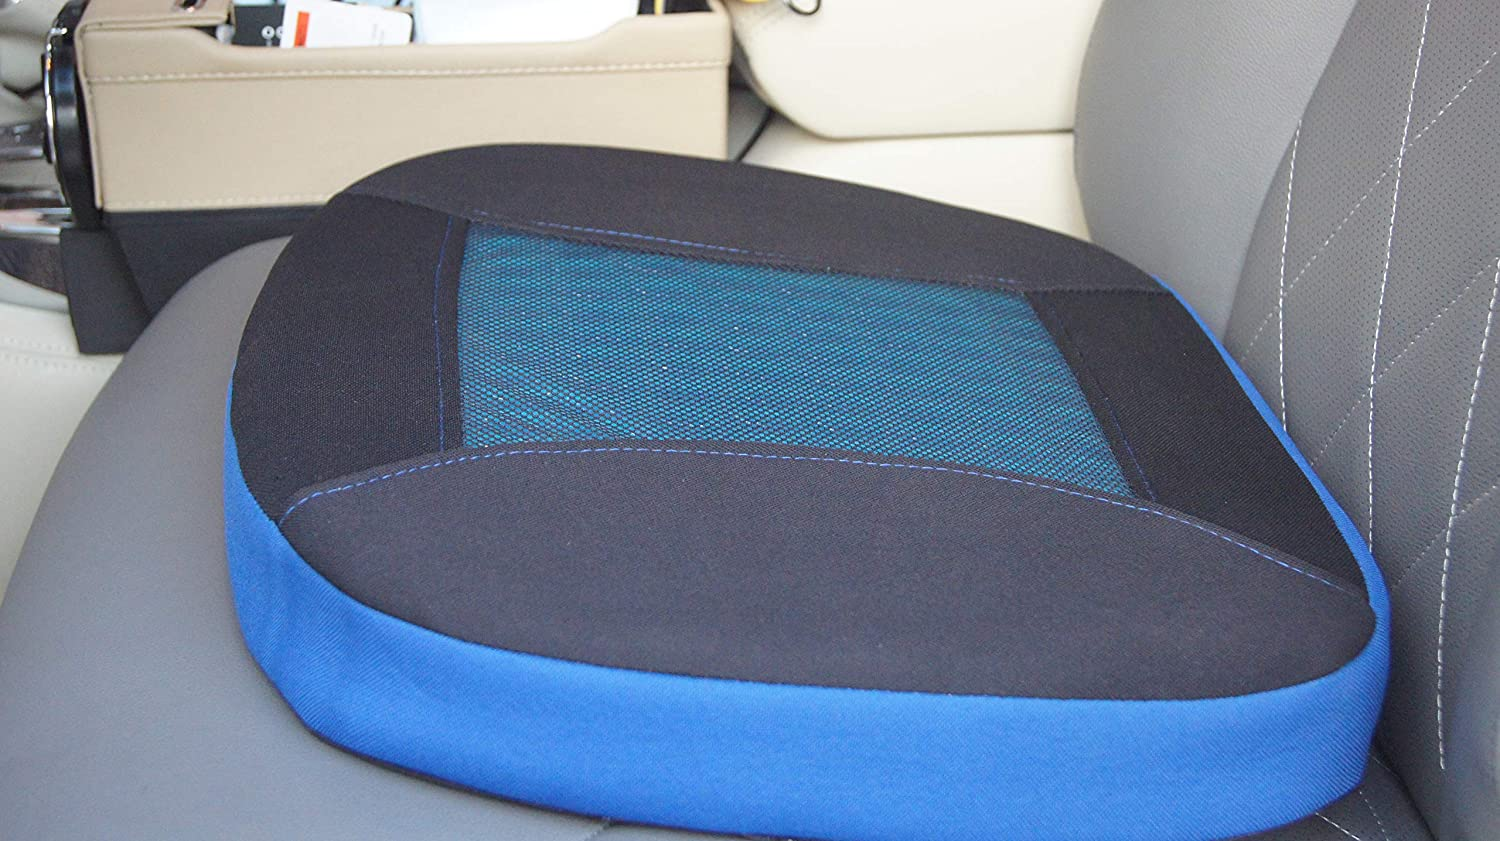 HAPPYCAT Car Seat Cushion Pad with Breathable Gel Memory Foam for Office Chair Car(Blue)